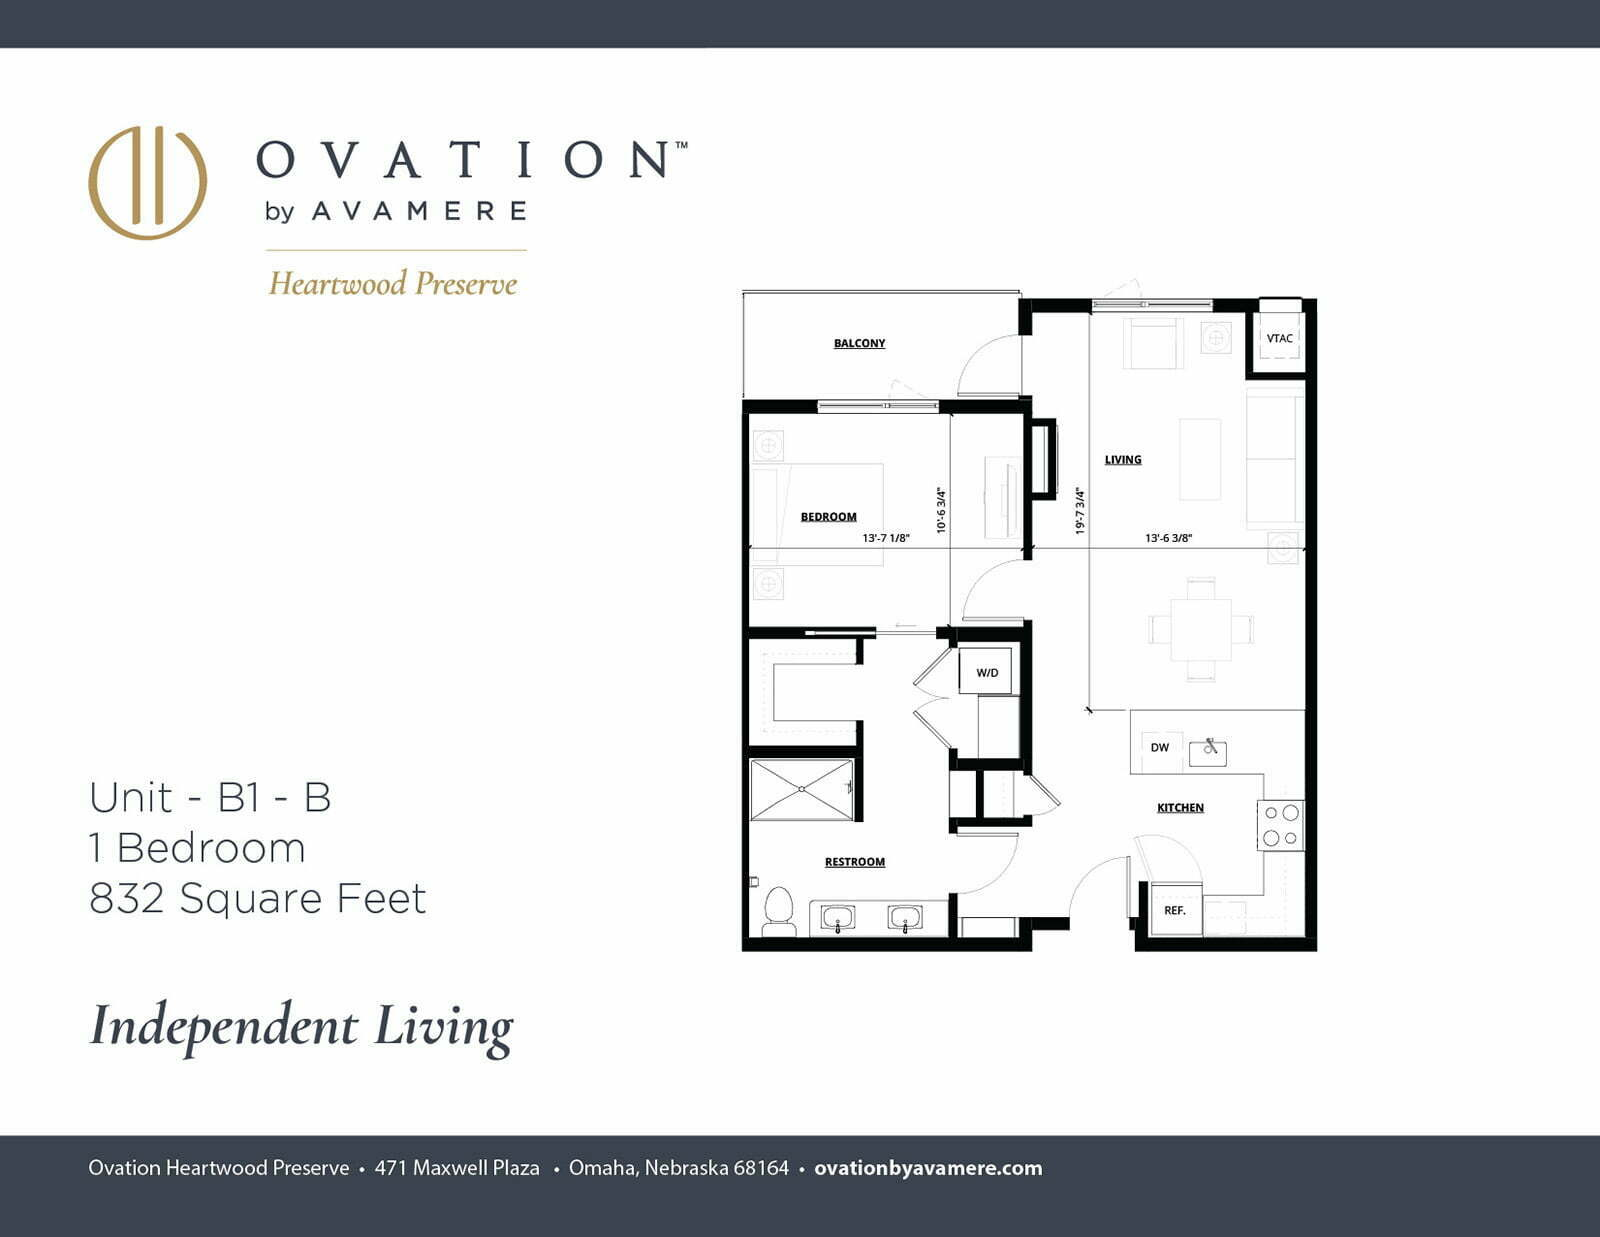 Independent Living | Room B1 - B